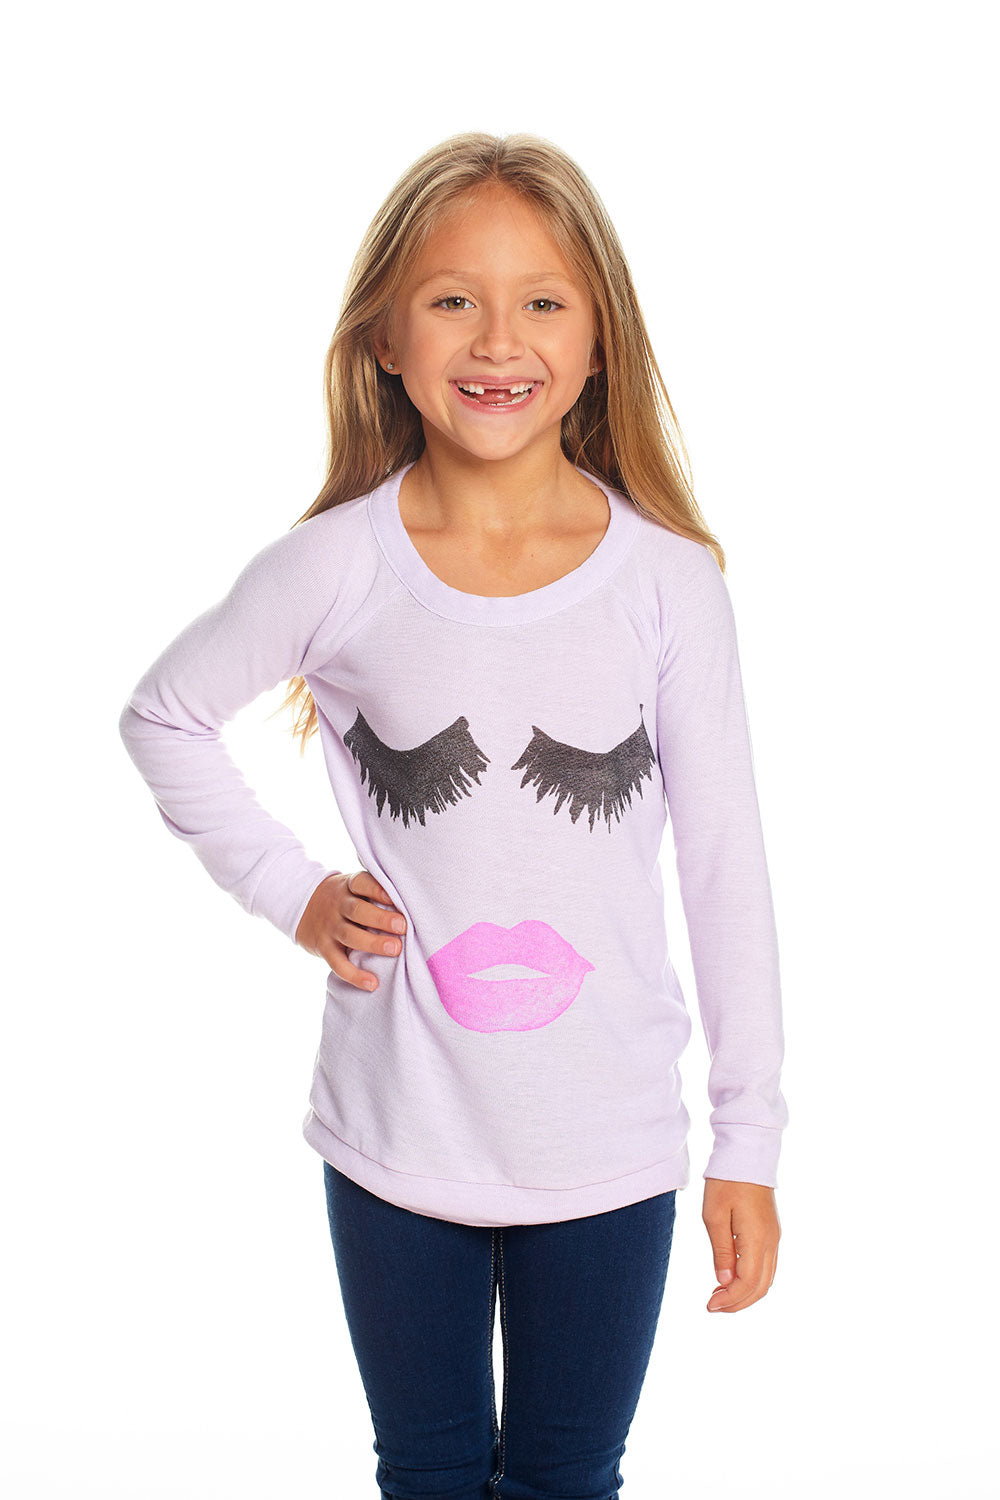 Lips & Lashes, GIRLS, chaserbrand.com,chaser clothing,chaser apparel,chaser los angeles